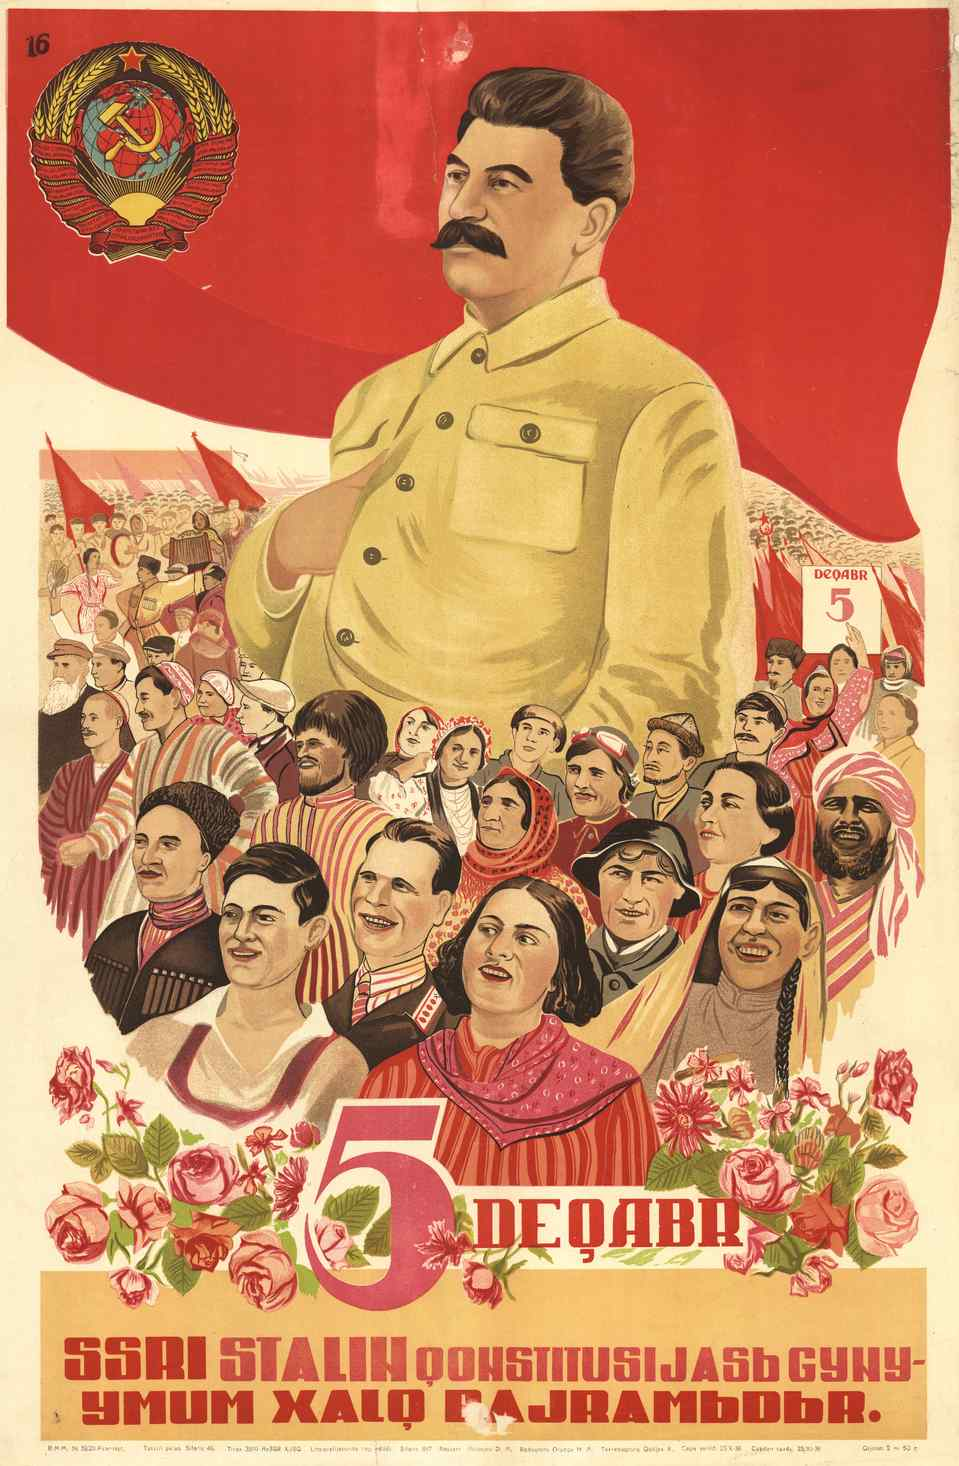 The personality cult of the leader, or What are totalitarian political regimes